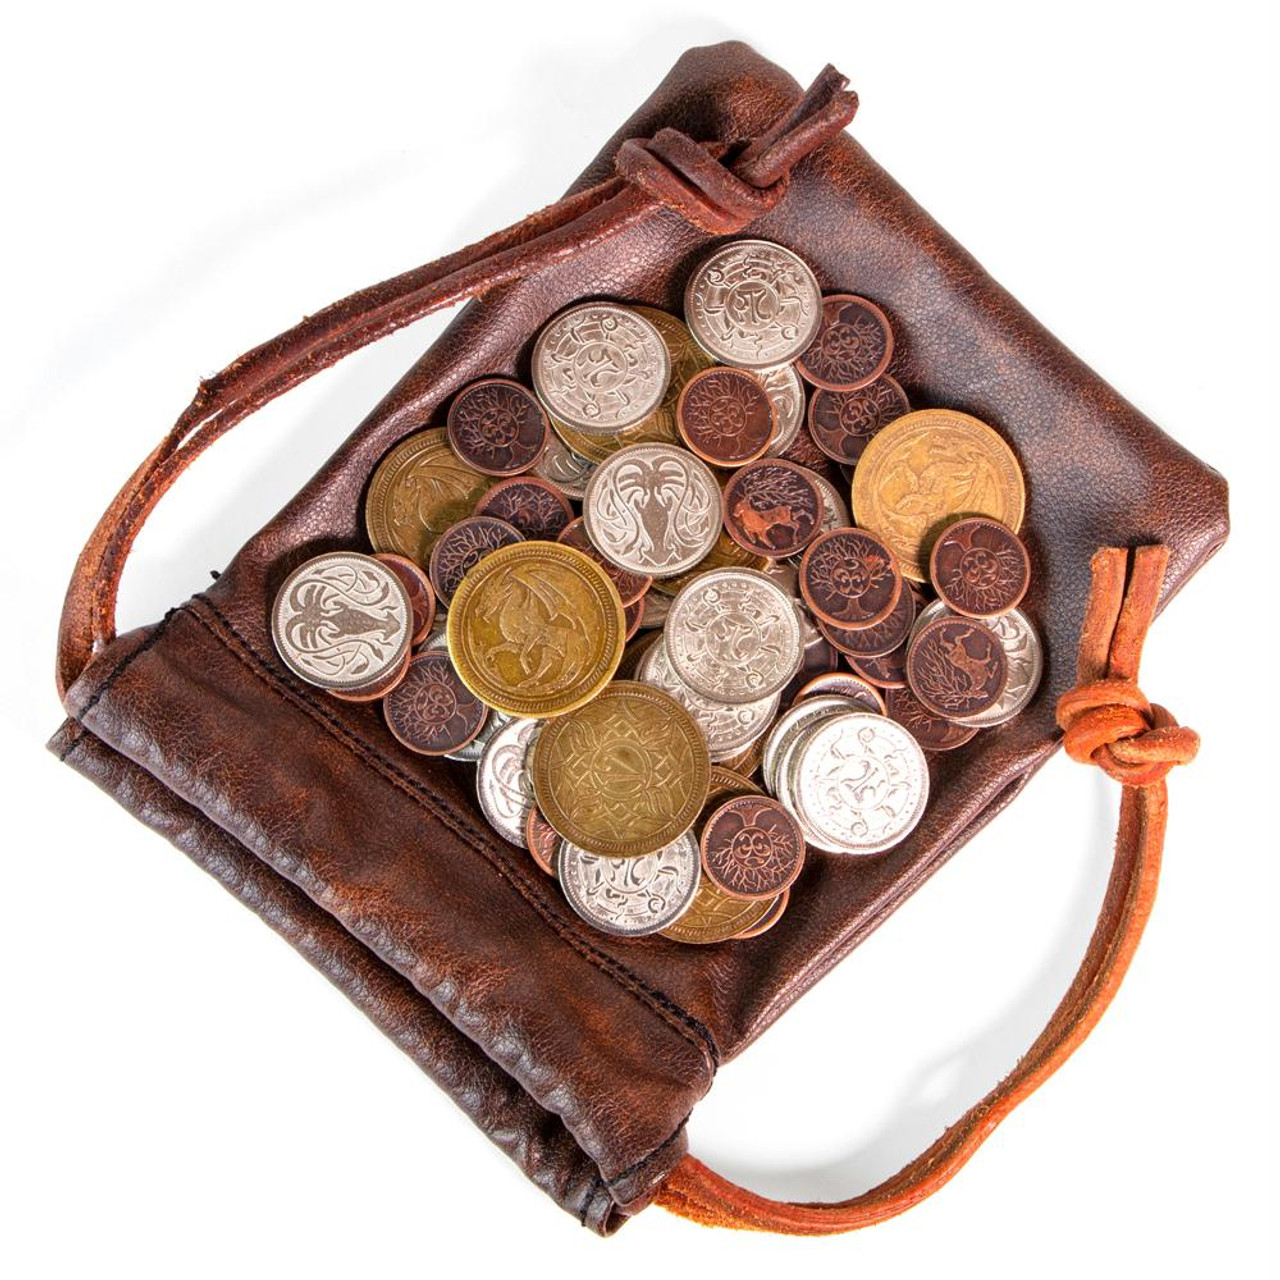 2d4708defa55dd The Dragon s Hoard - 60 Metal Coins in Leather Pouch - Dice Game Depot